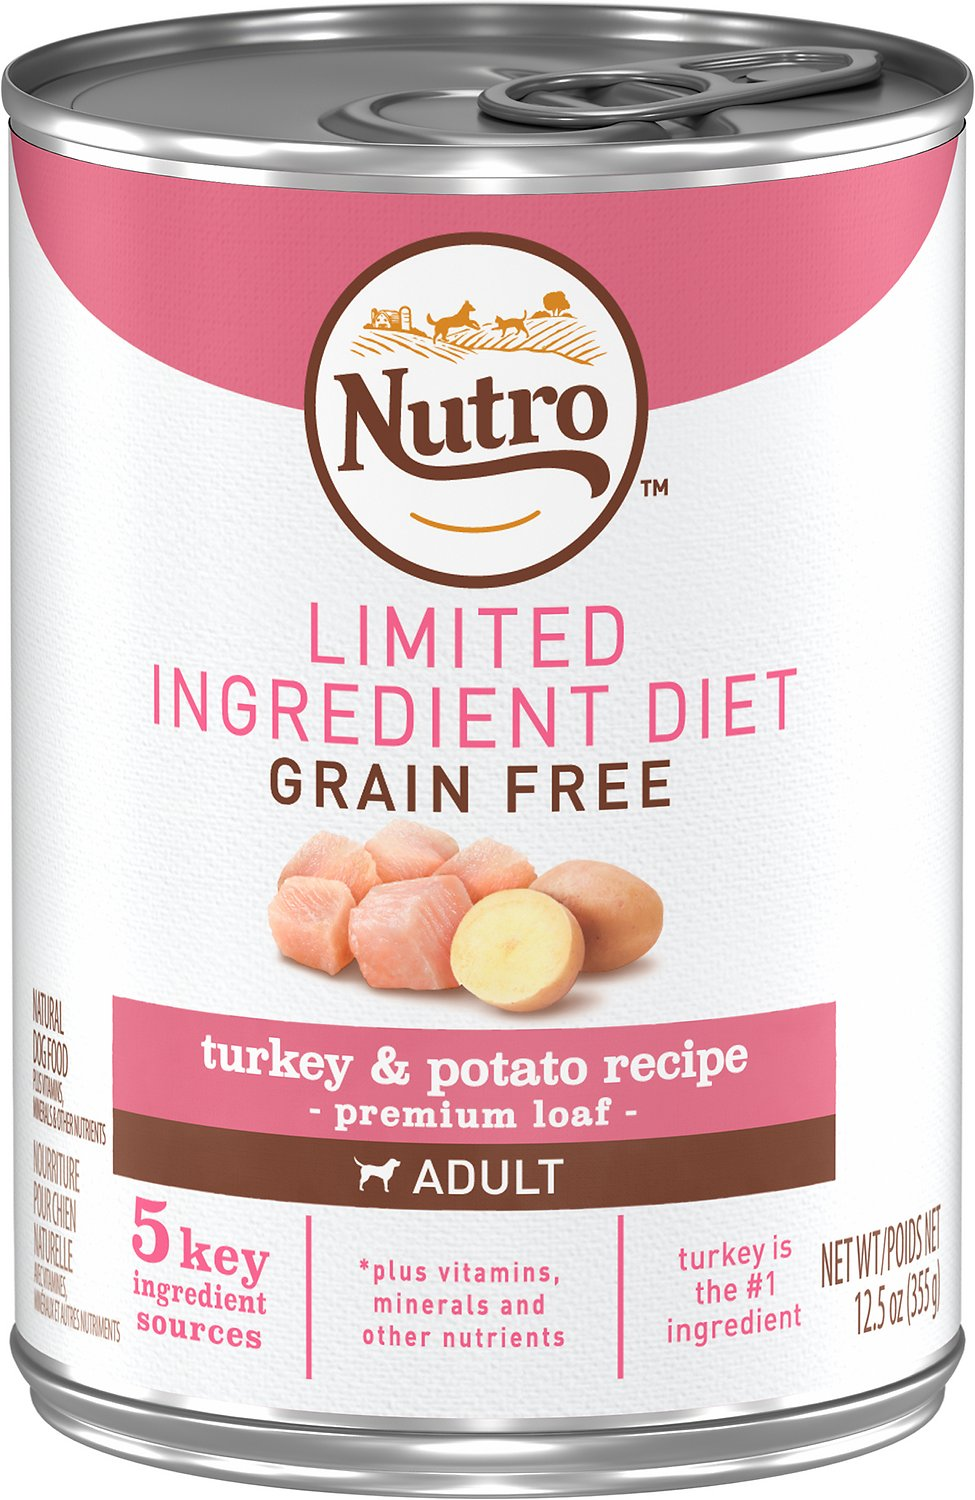 Nutro Limited Ingredient Diet Grain-Free Adult Farm Raised Turkey & Potato Recipe Canned Dog Food, 12.5-oz, case of 12 Image